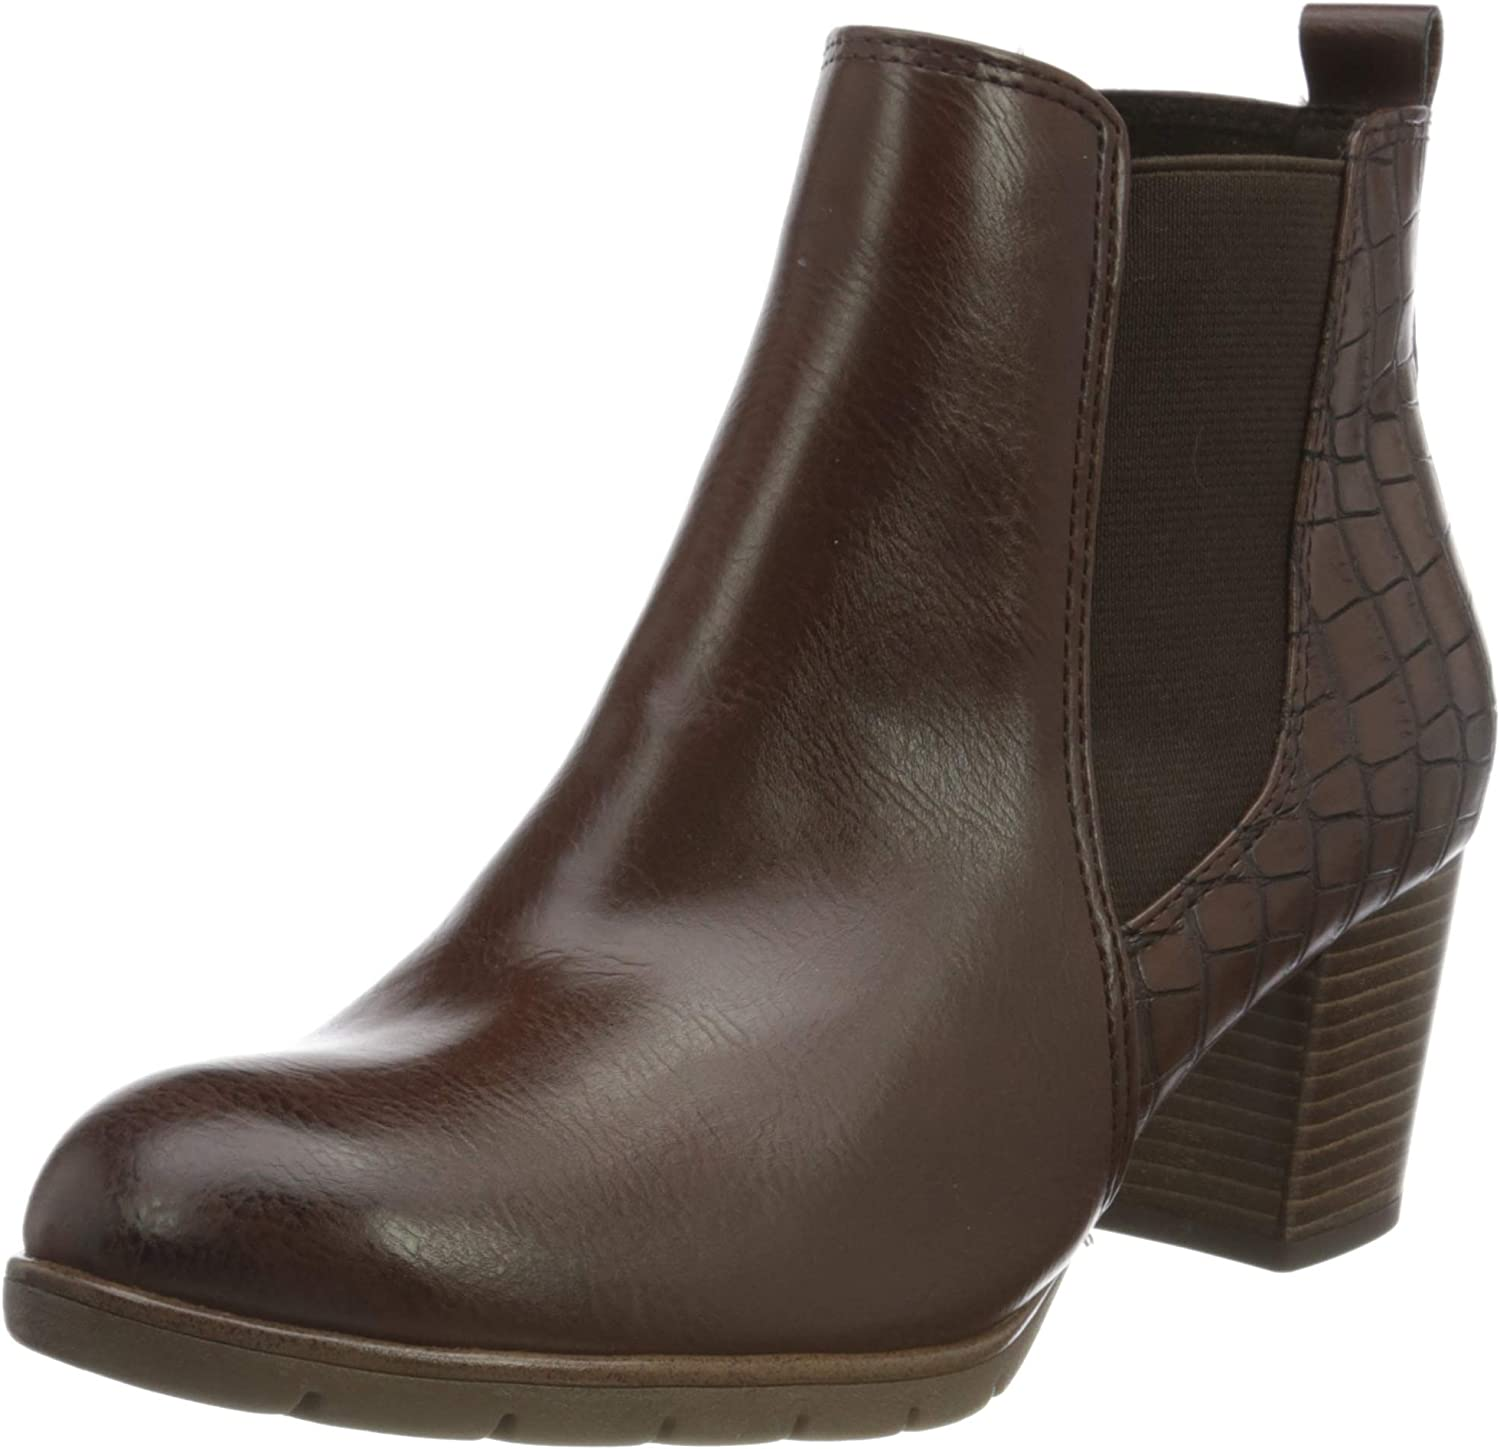 Marco Tozzi Women's Super beauty product restock quality top Max 86% OFF Classic Boot Ankle